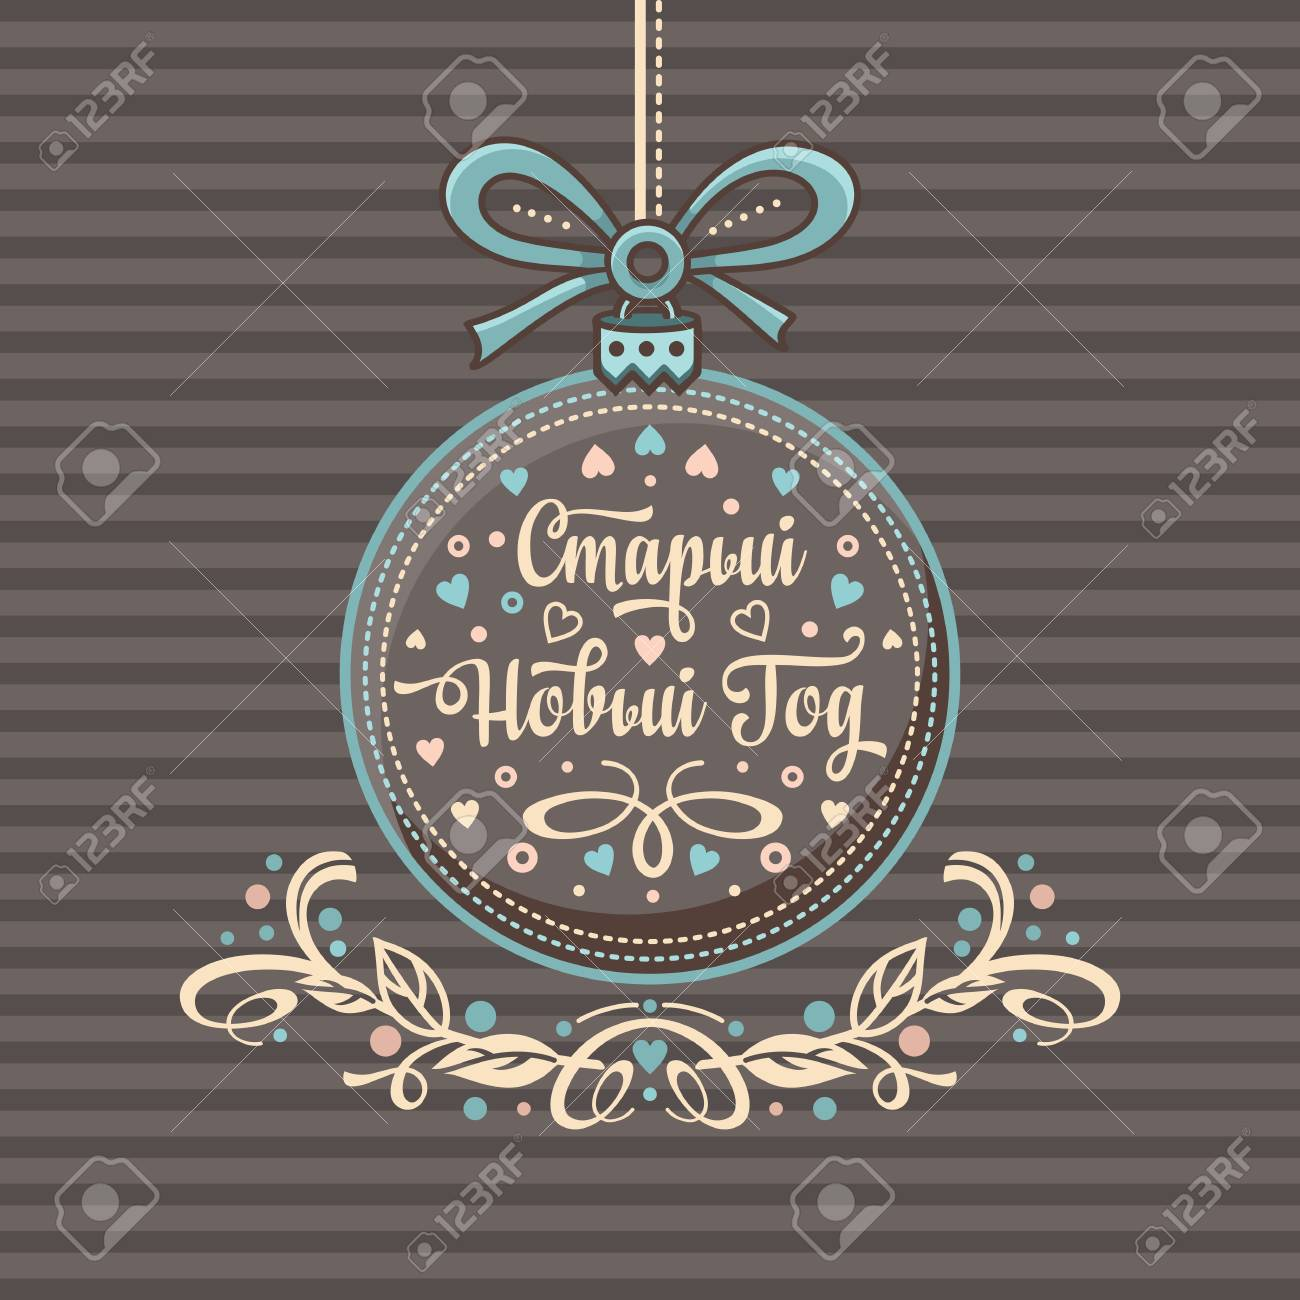 Happy New year greeting card. Russian holiday. A congratulatory inscription in Cyrillic. English translation - the Old New Year. - 70734760